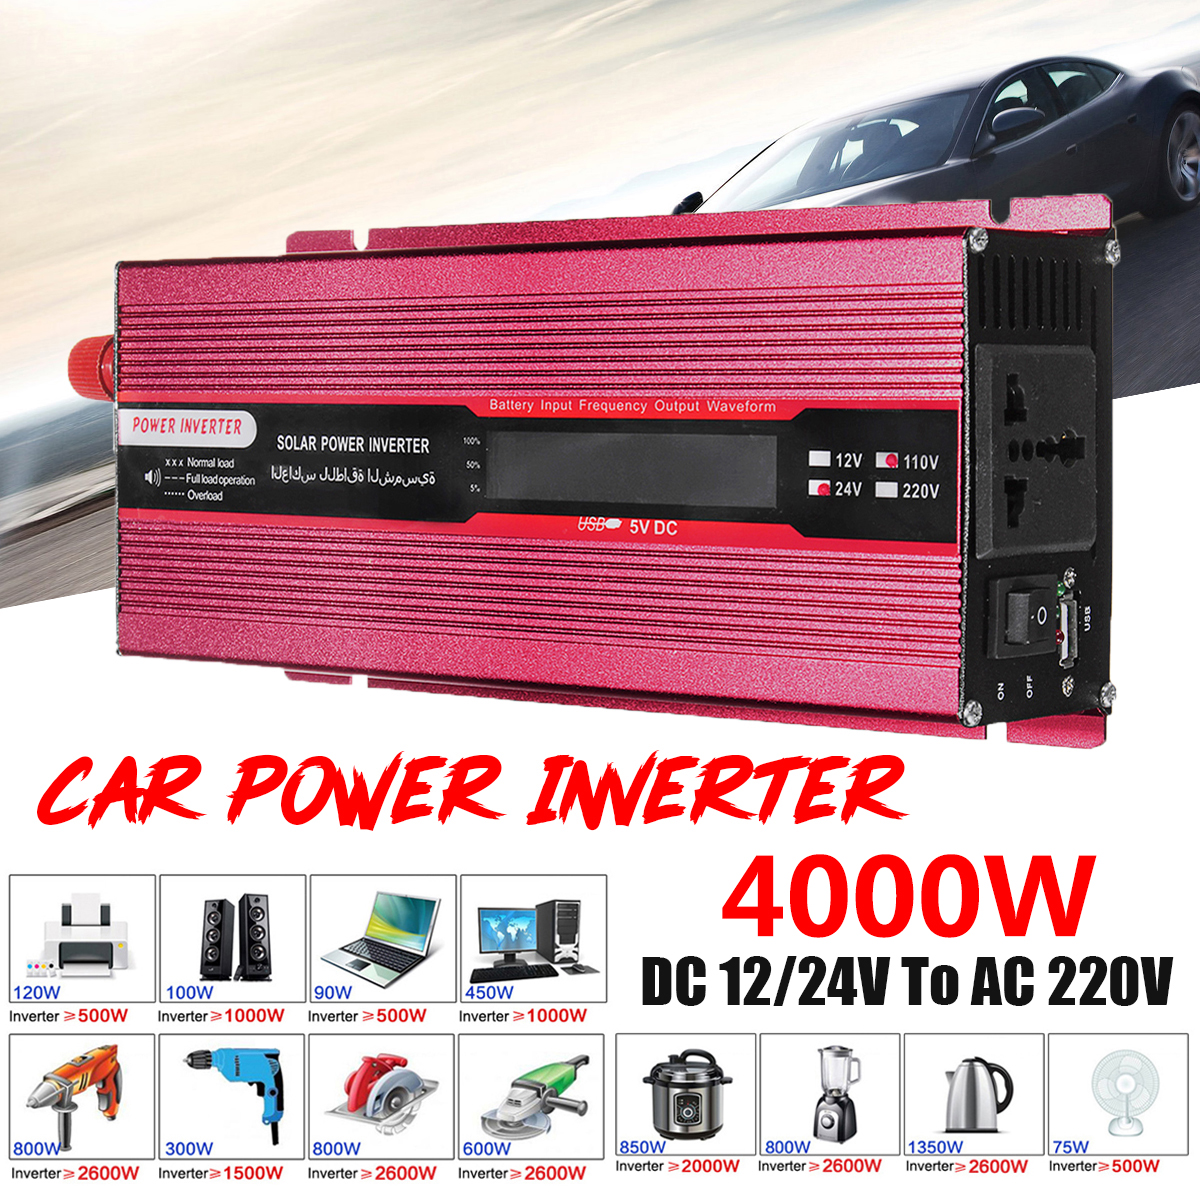 Efficiency Car Power Inverter PEAK 4000W 12/24V To AC 220/110V USB Modified Sine Wave Converter Transformer Voltage Display 12 24v to ac 220 110v car power inverter converter peak 10000w usb modified sine wave voltage transformer universal intelligent